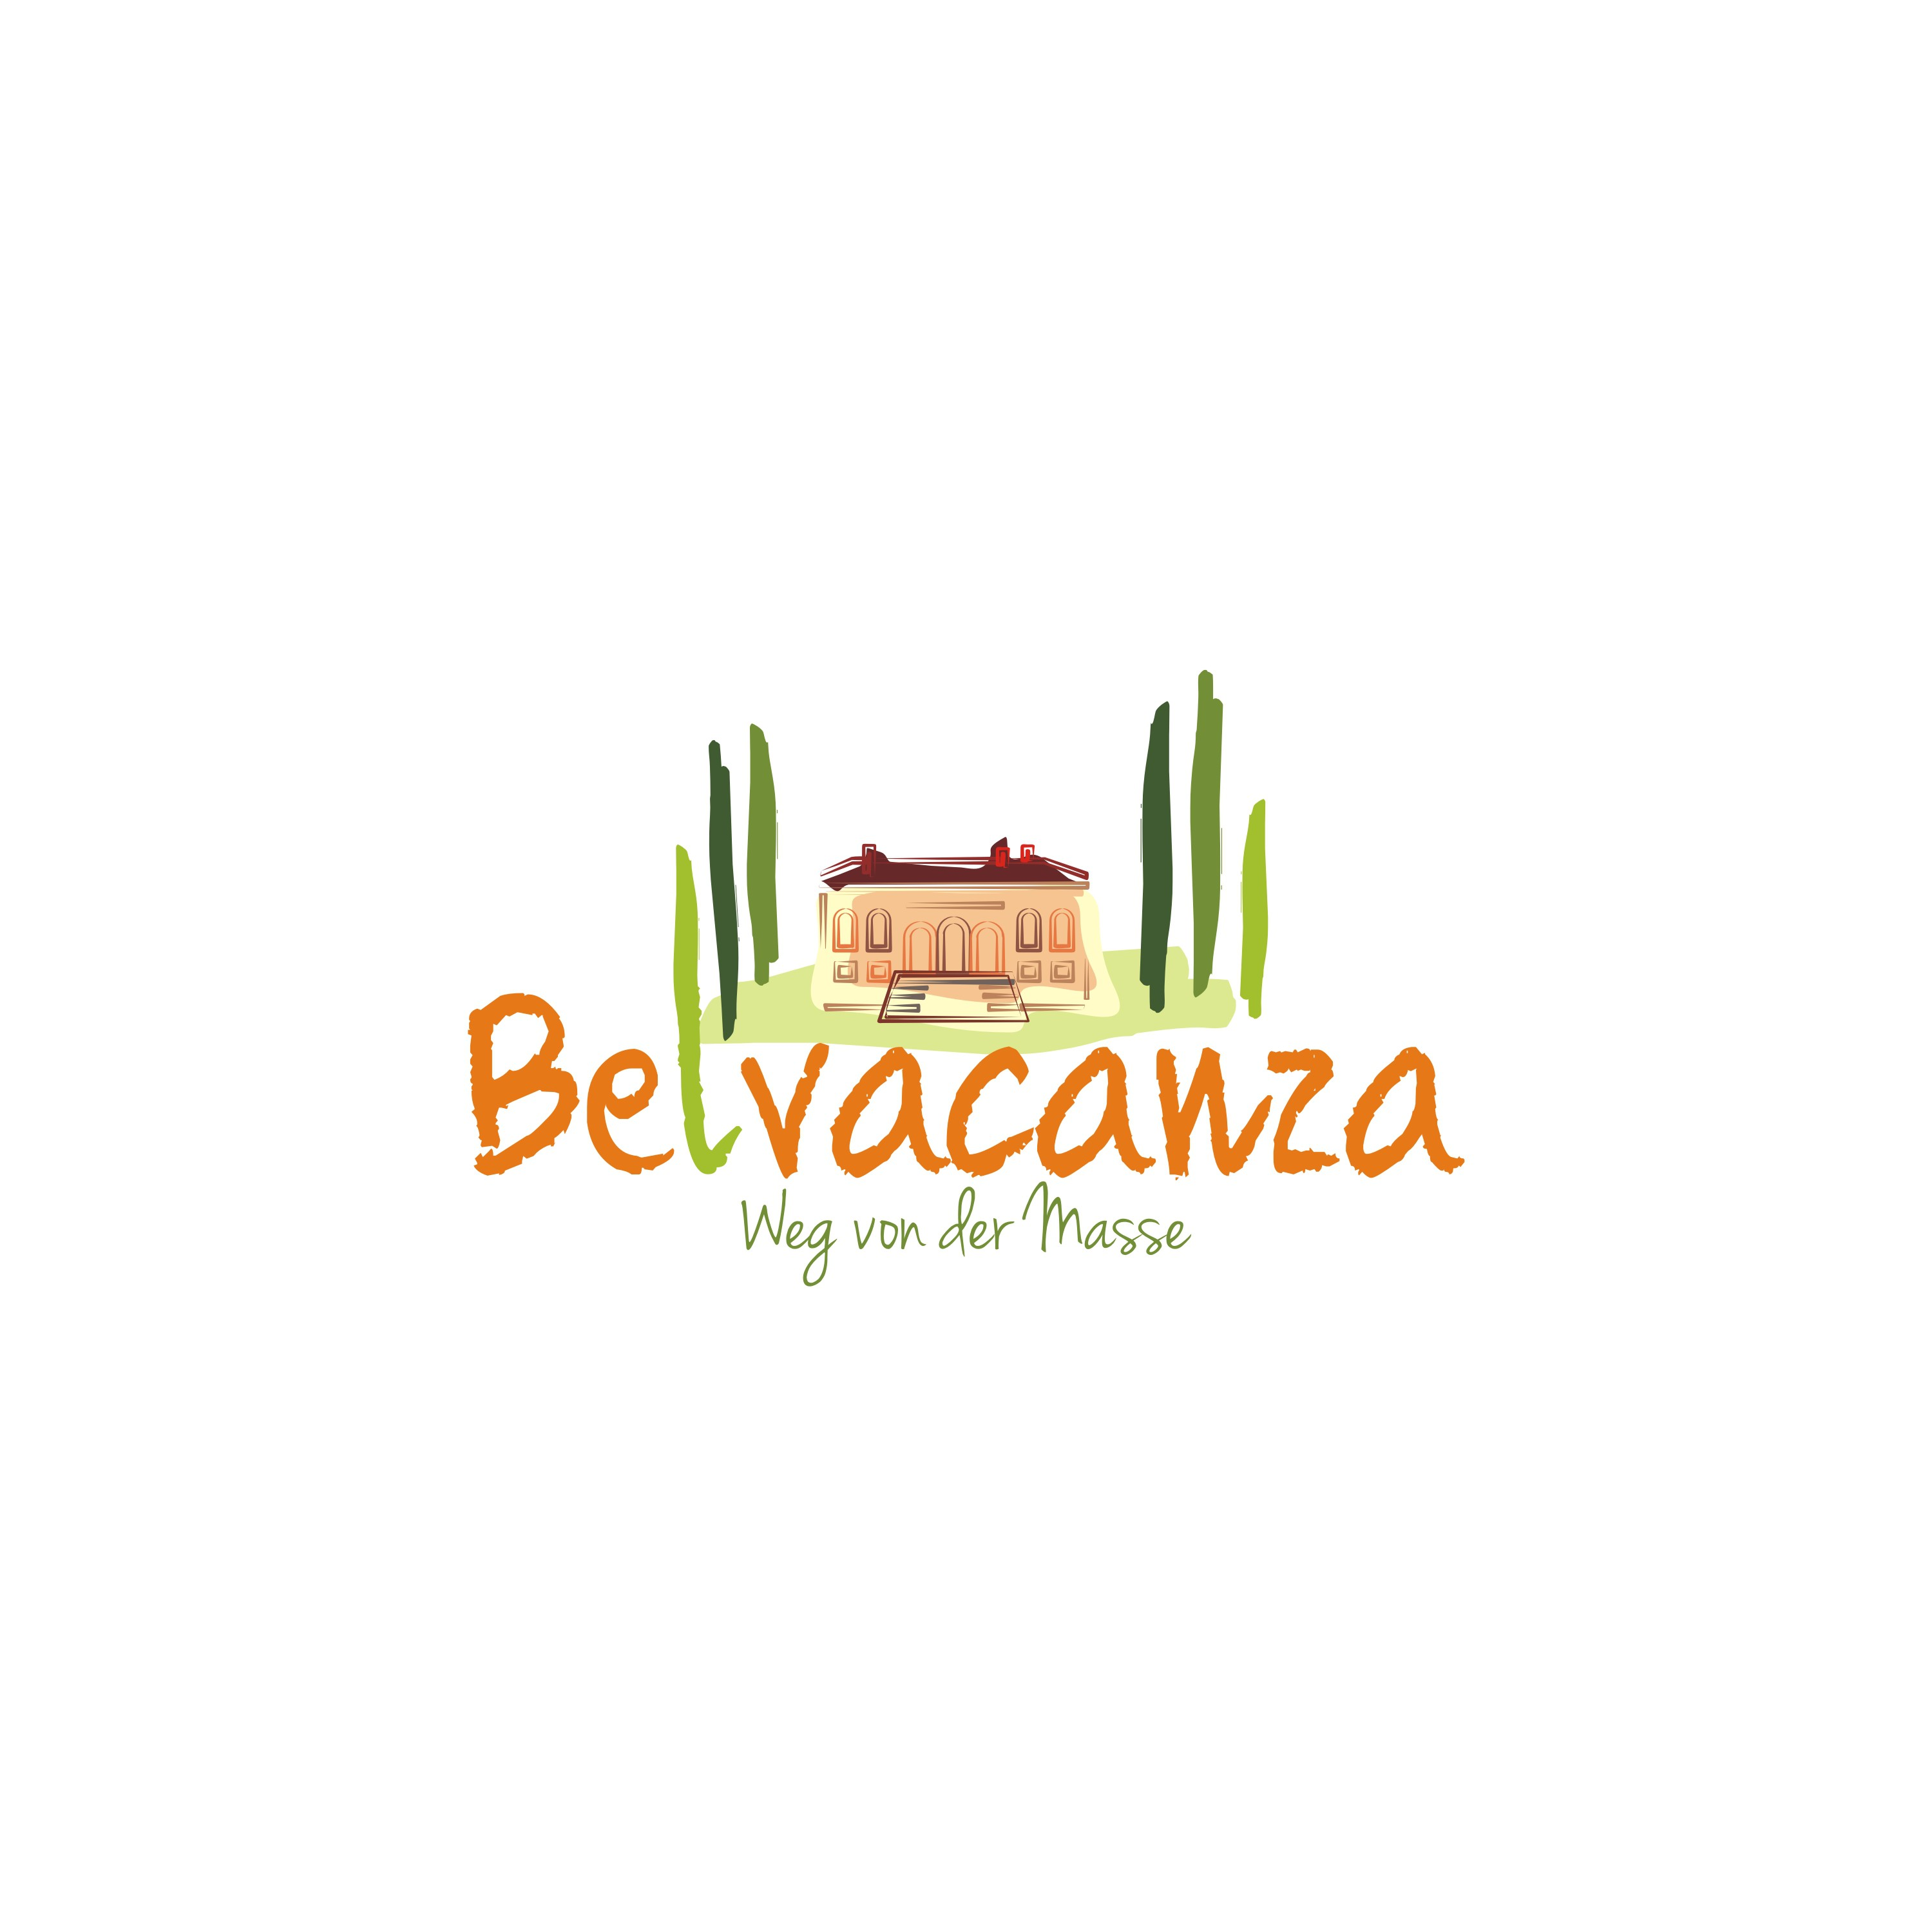 Holiday rental site for houses in Italy (Tuscany / Umbria) needs logo and icons